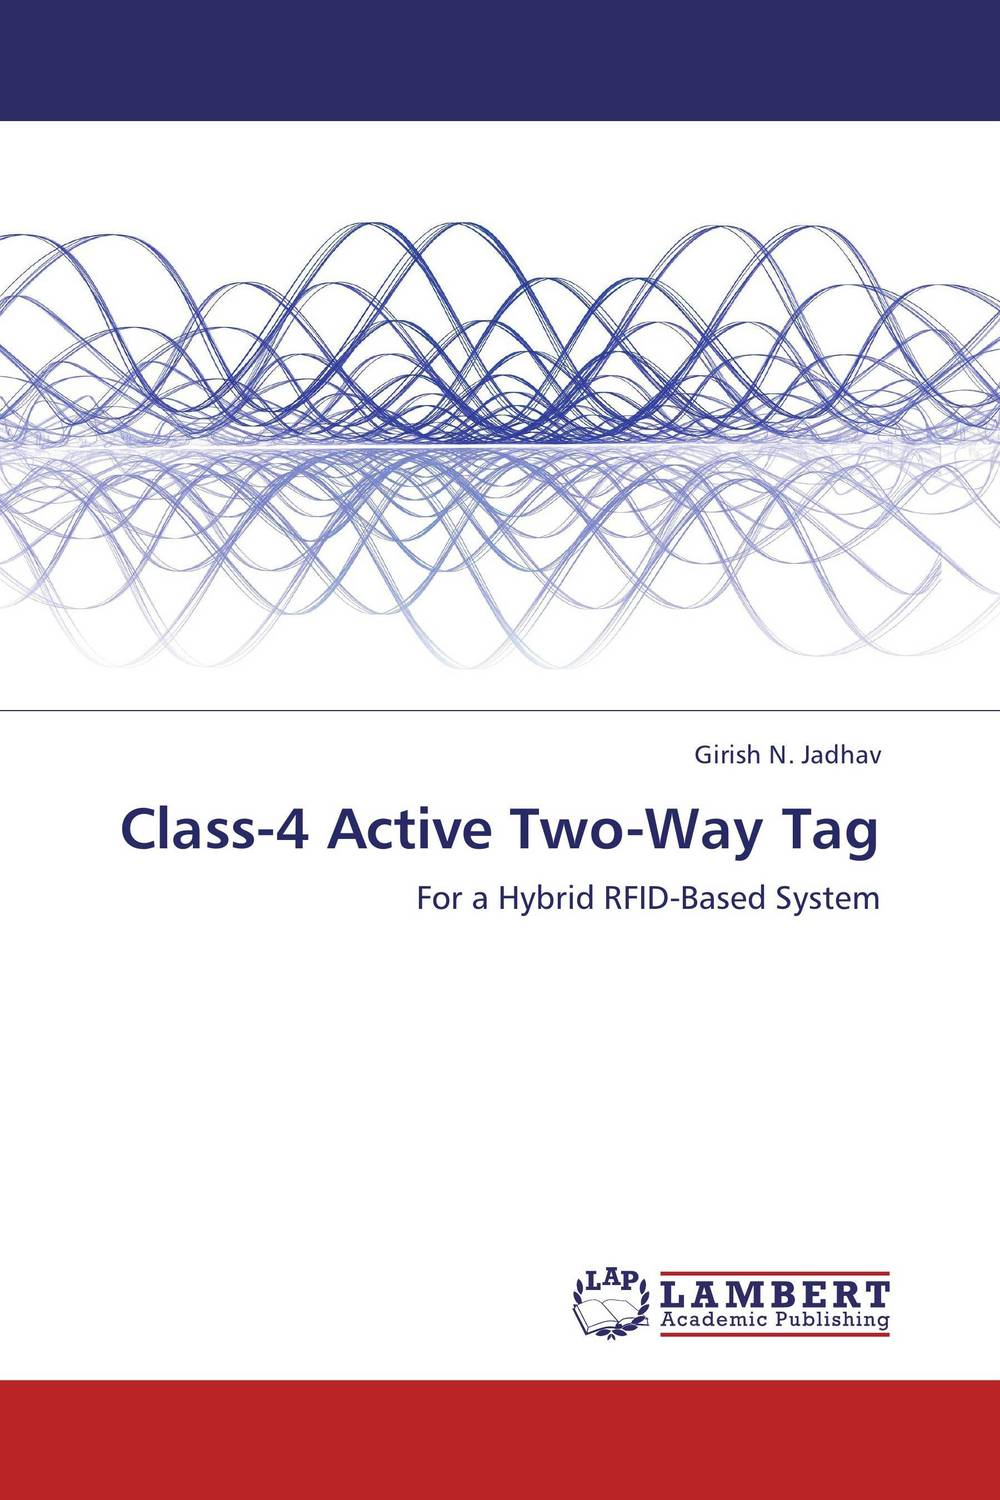 Class-4 Active Two-Way Tag a novel separation technique using hydrotropes